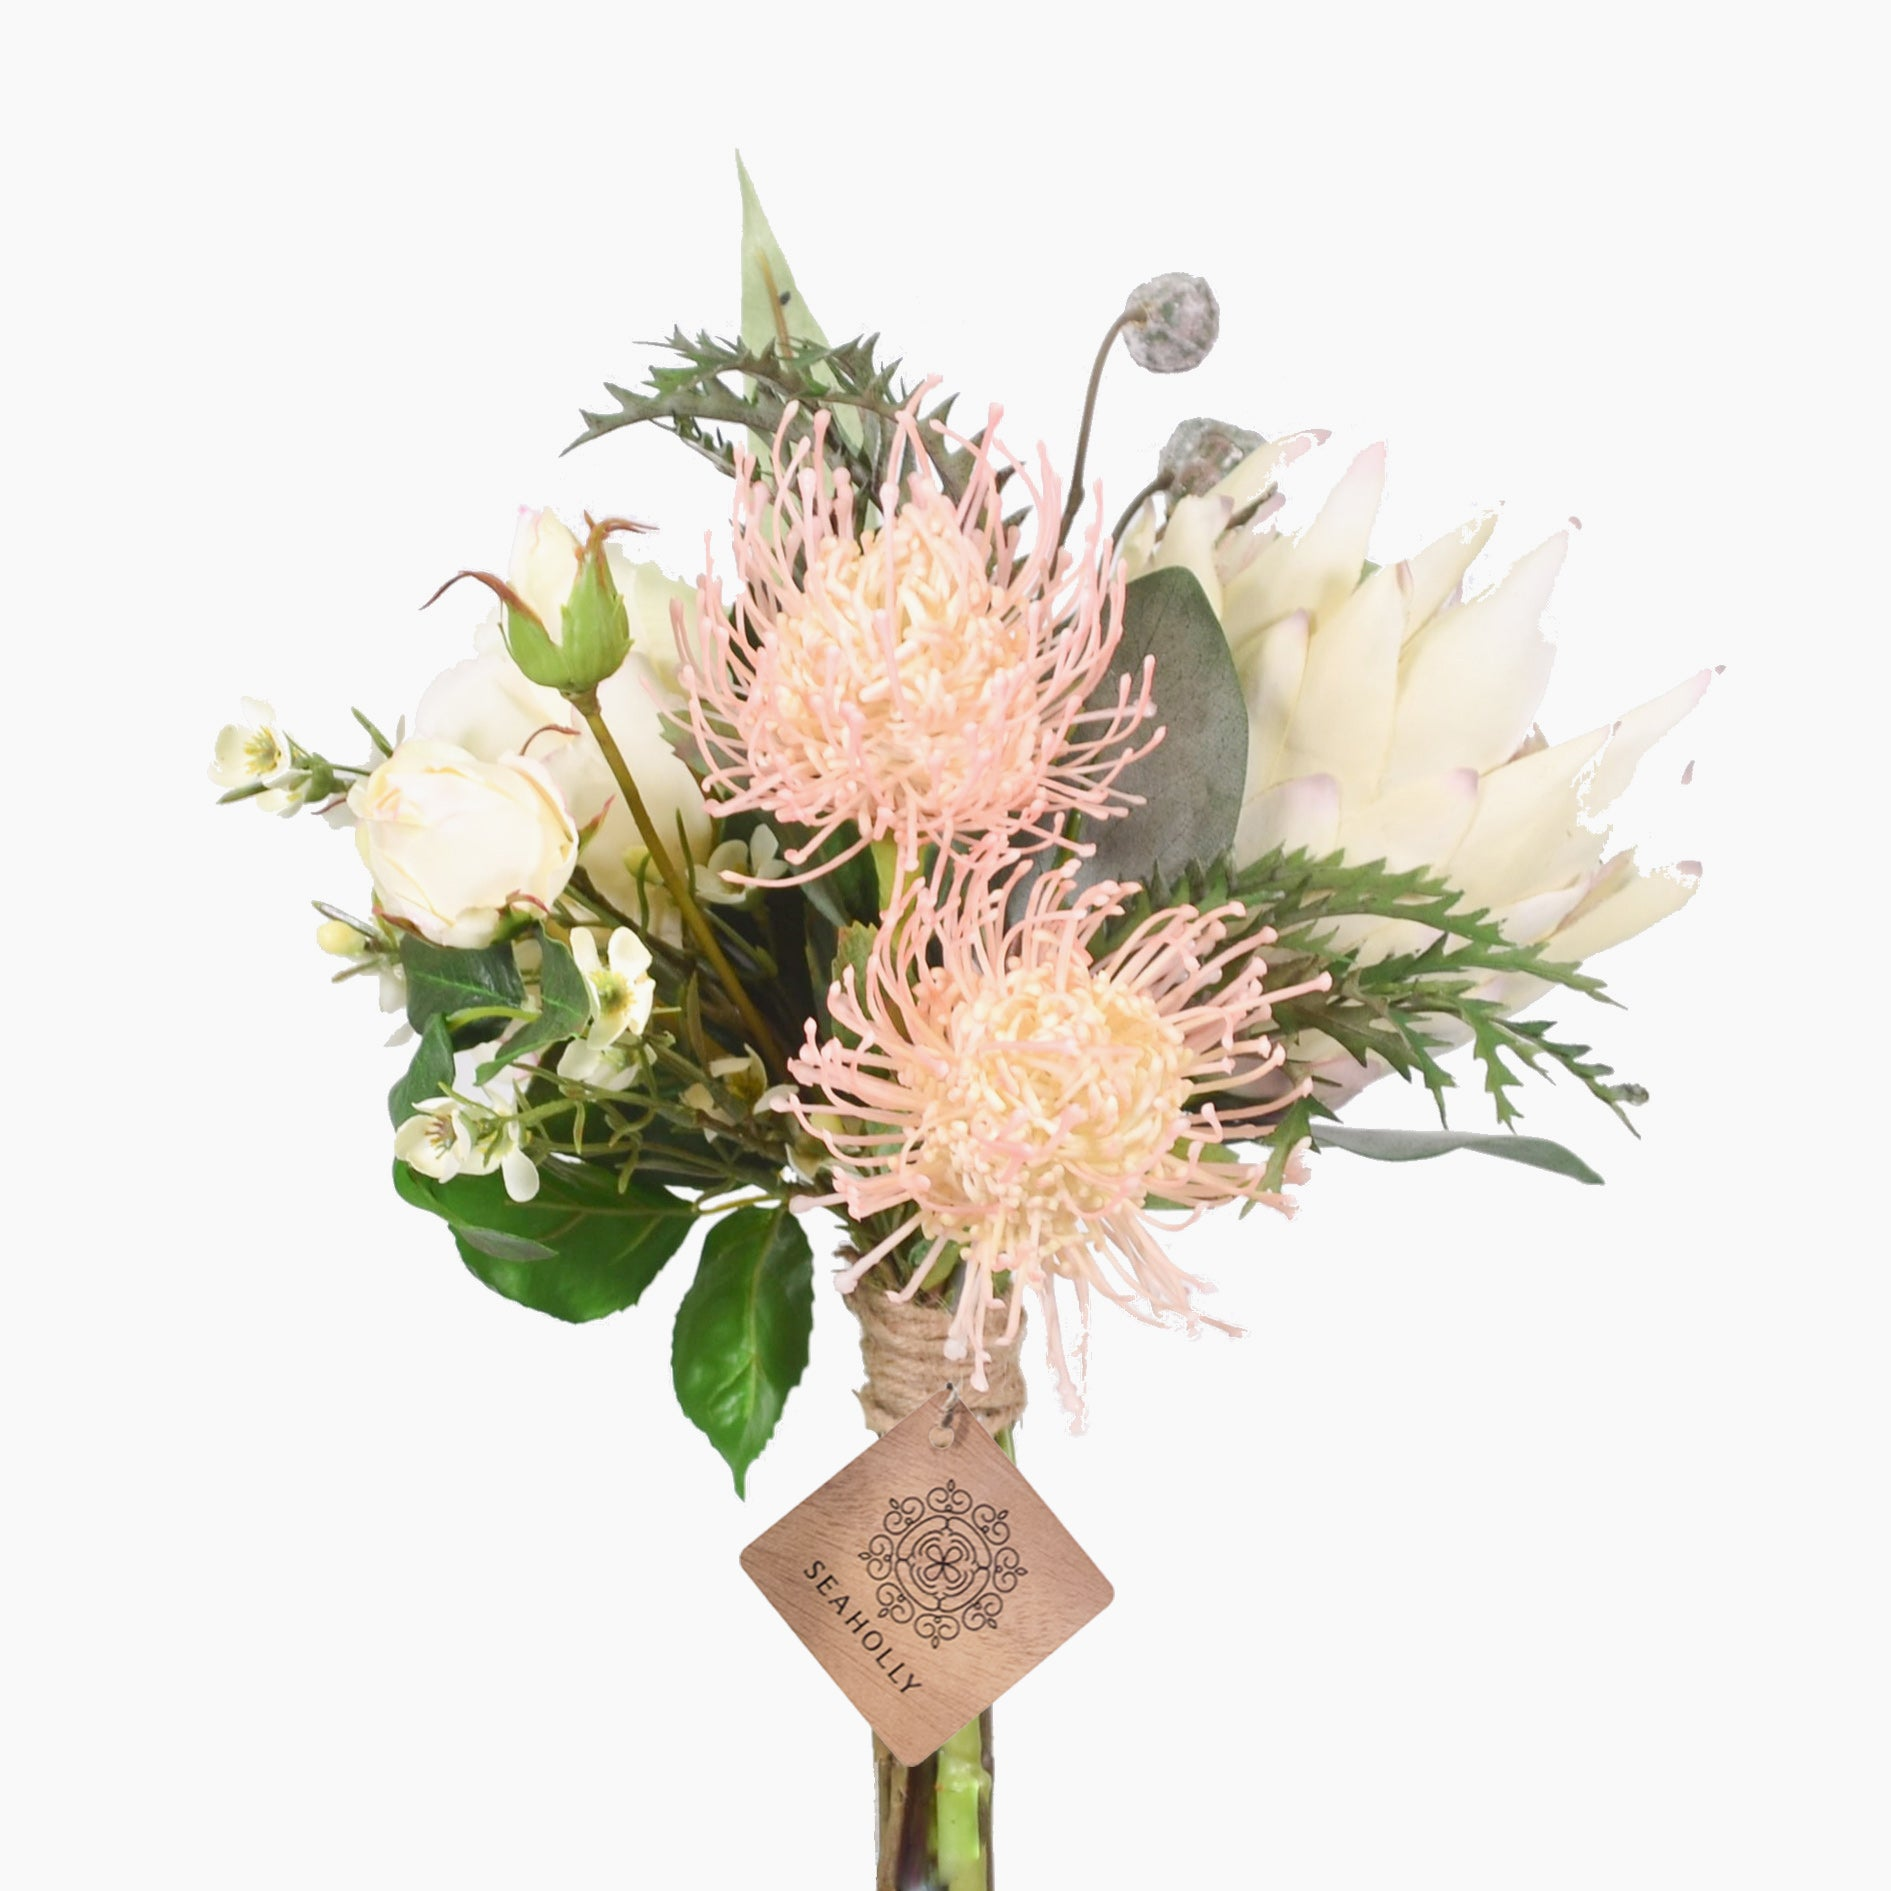 Cream king protea, wax flowers, rose and eucalyptus pods